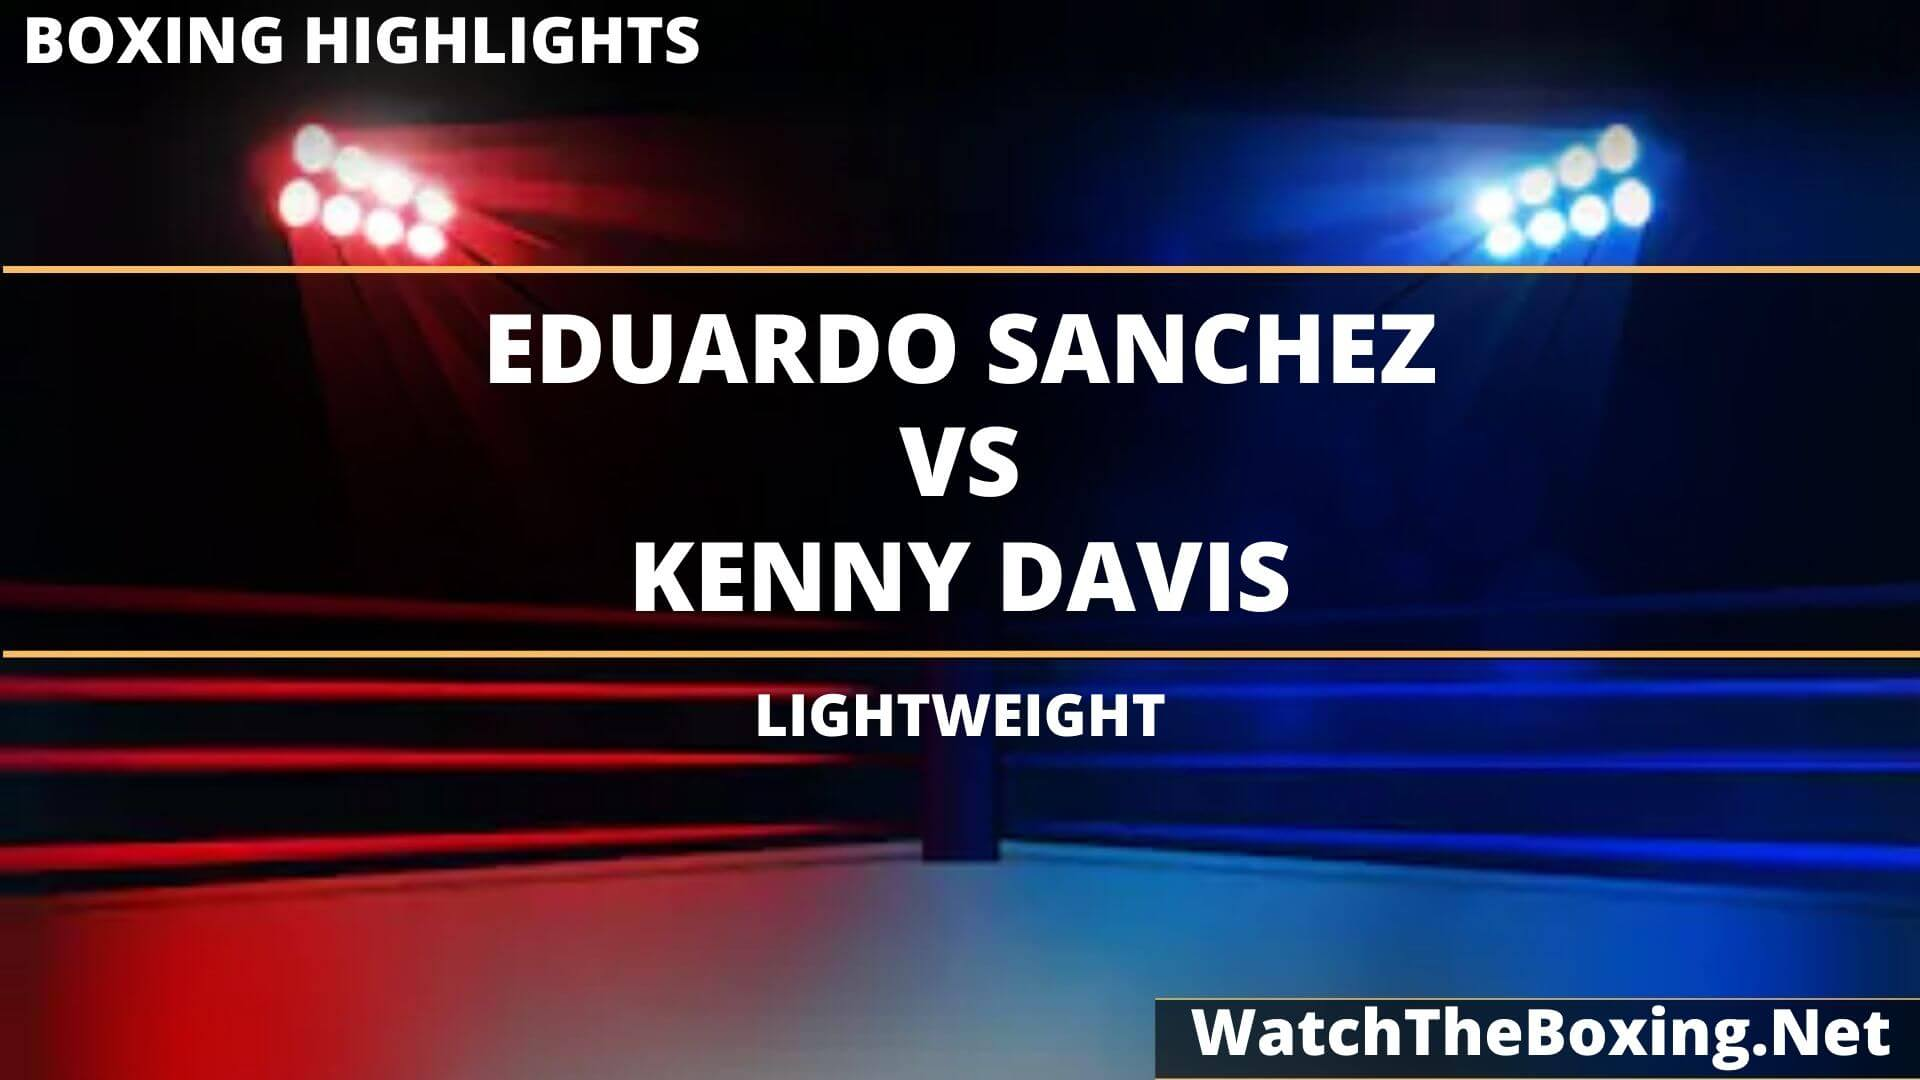 Eduardo Sanchez Vs Kenny Davis Highlights 2020 Lightweight